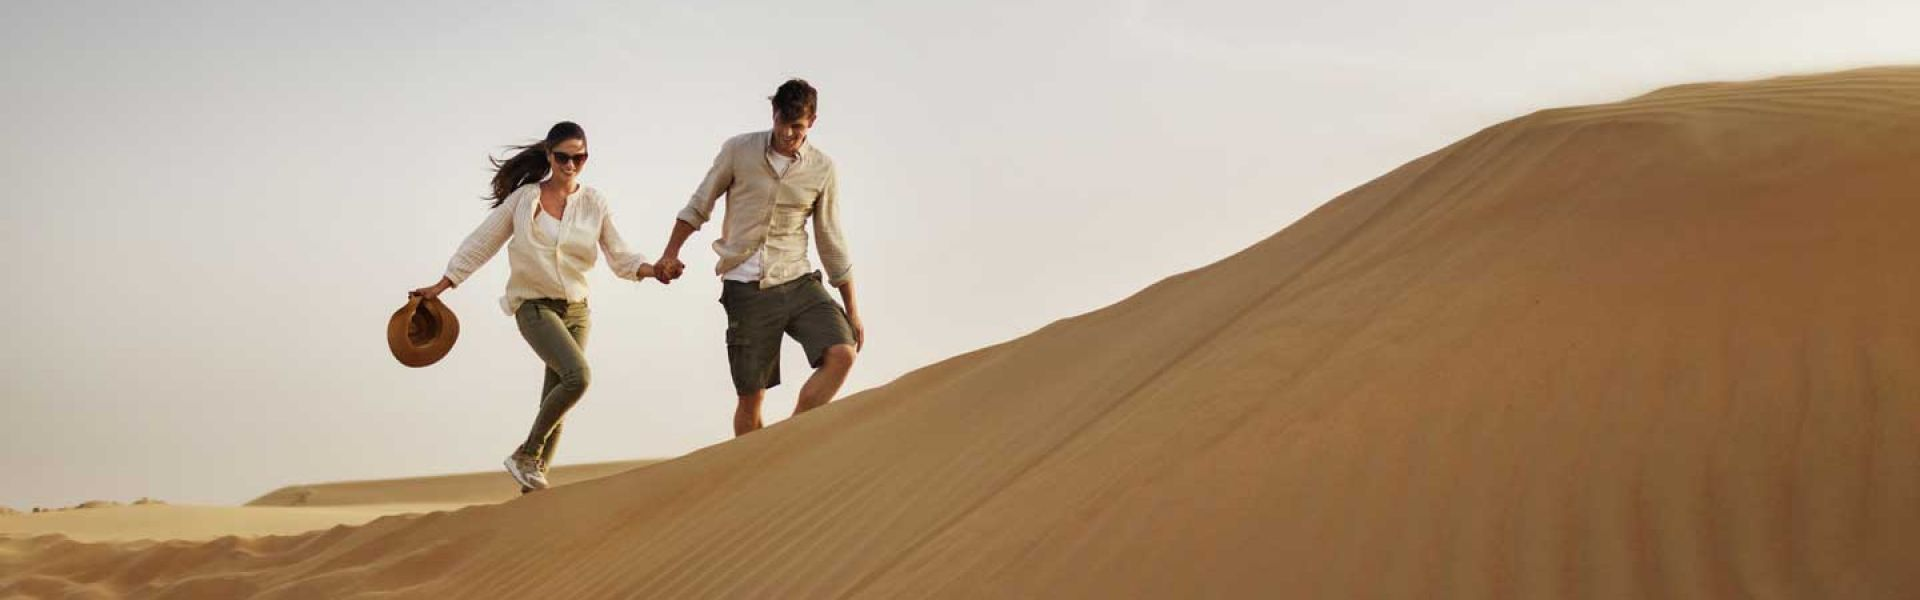 DubaiTEASER DESERT COUPLE